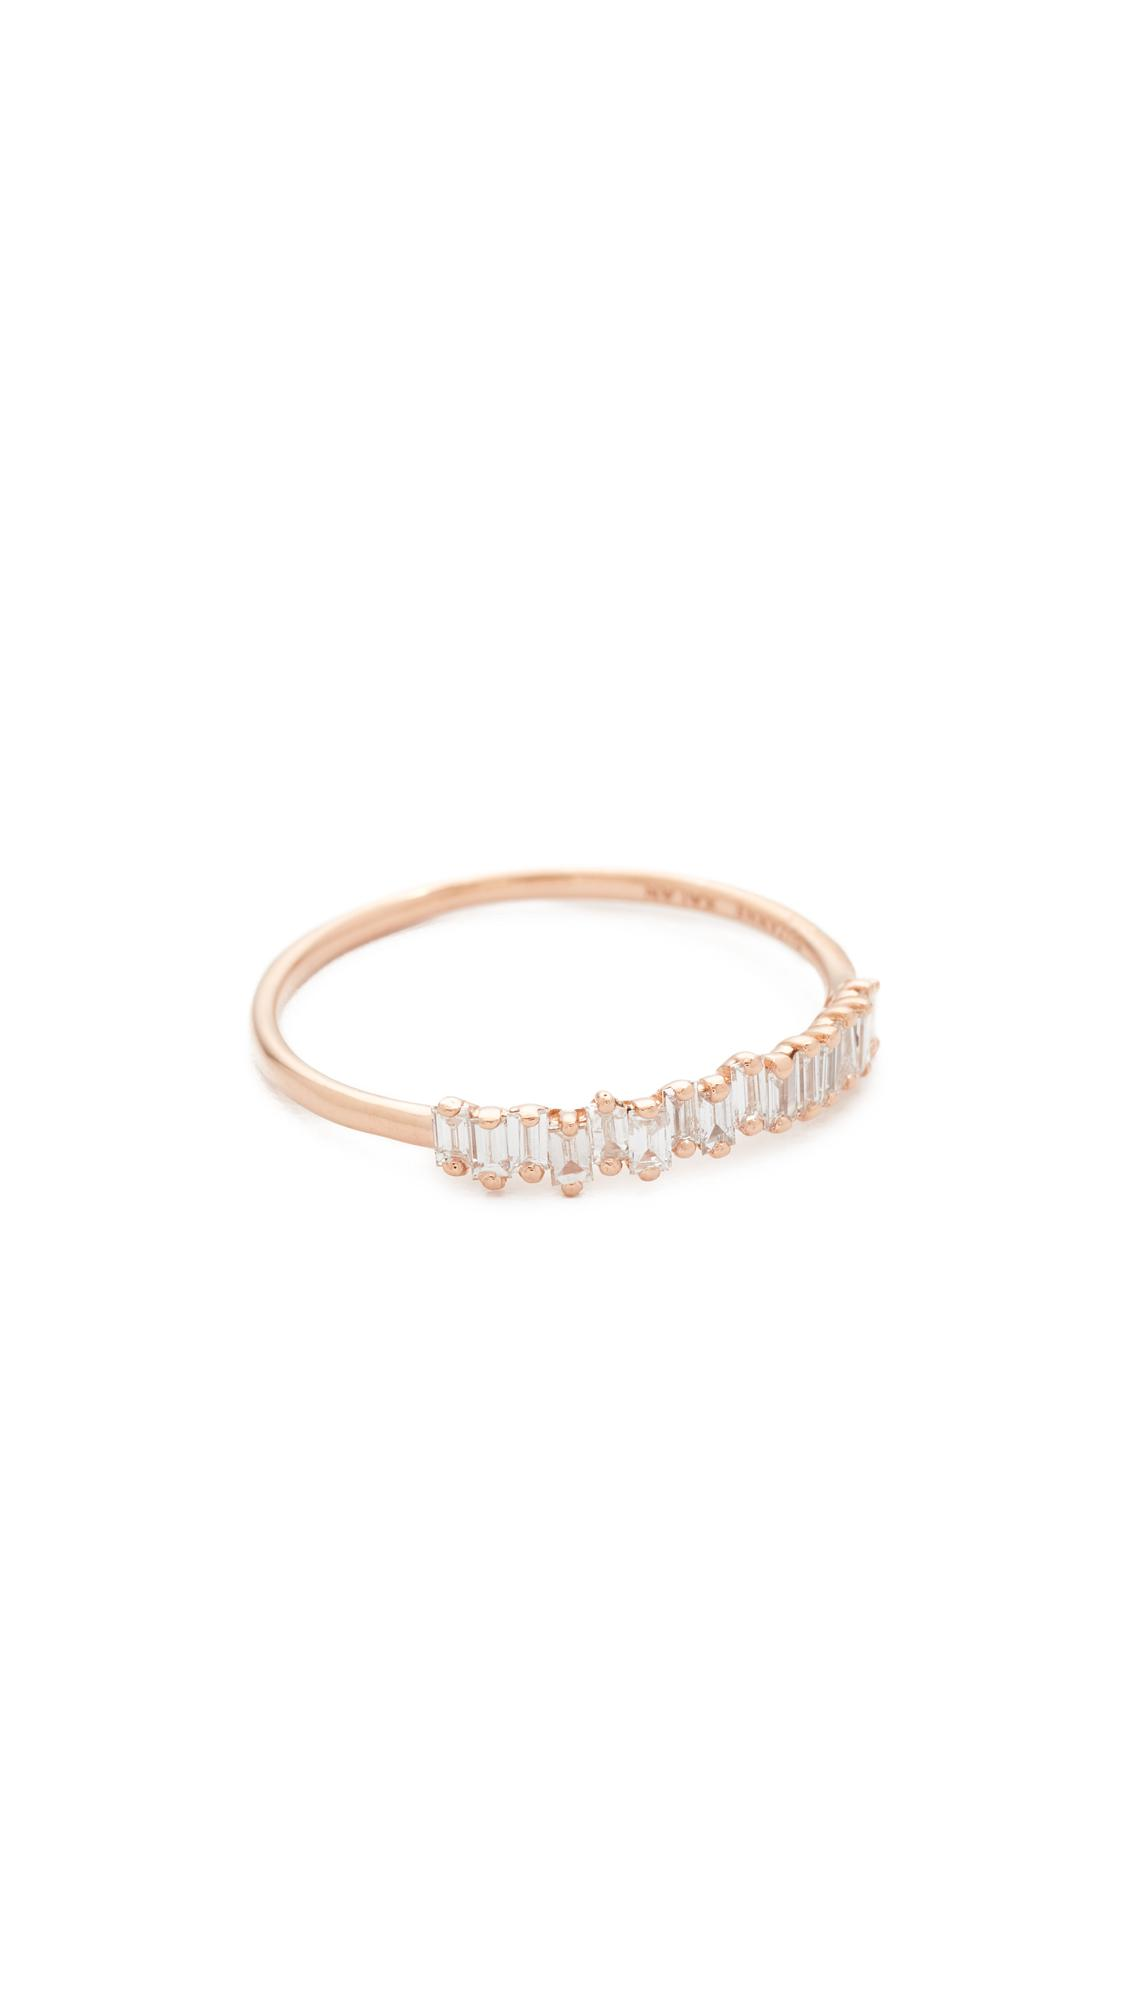 Suzanne Kalan Fireworks 18k Gold Eternity Band Ring 5f1f6KWF